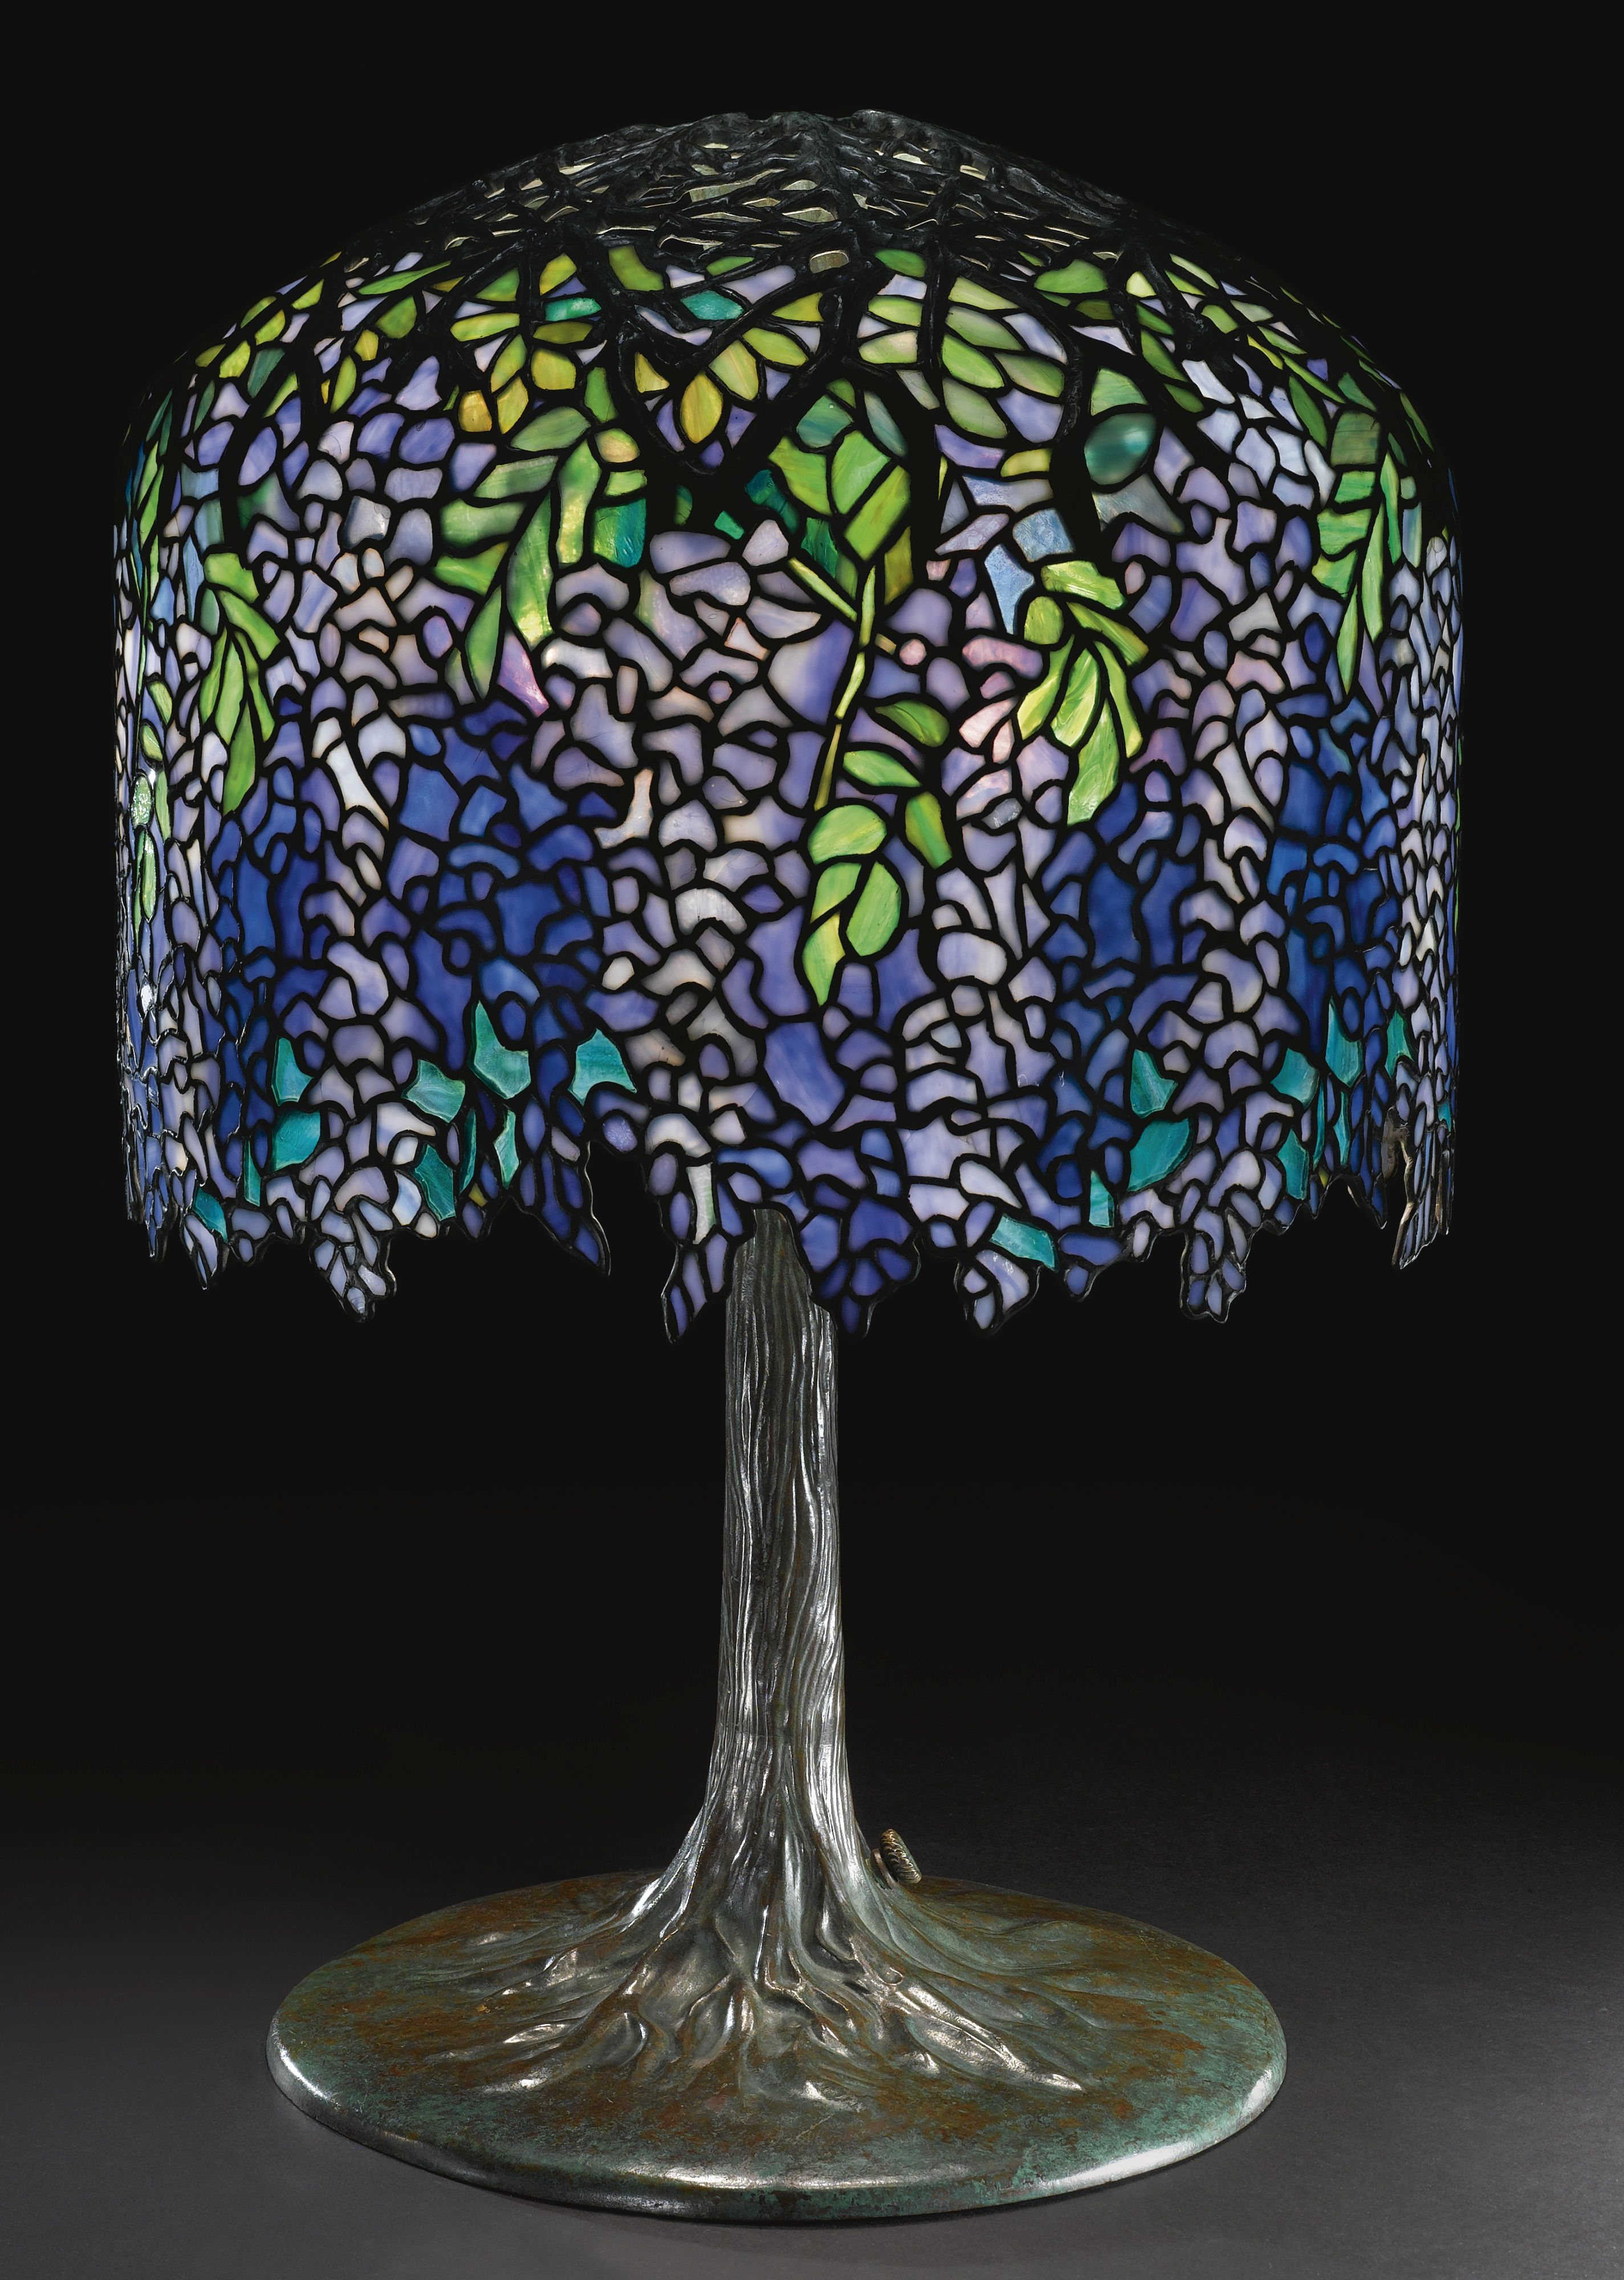 Tiffany studios a superb wisteria table lamp tiffany co one day im gonna have this tiffany studios wisteria table lamp on my desk mozeypictures Image collections